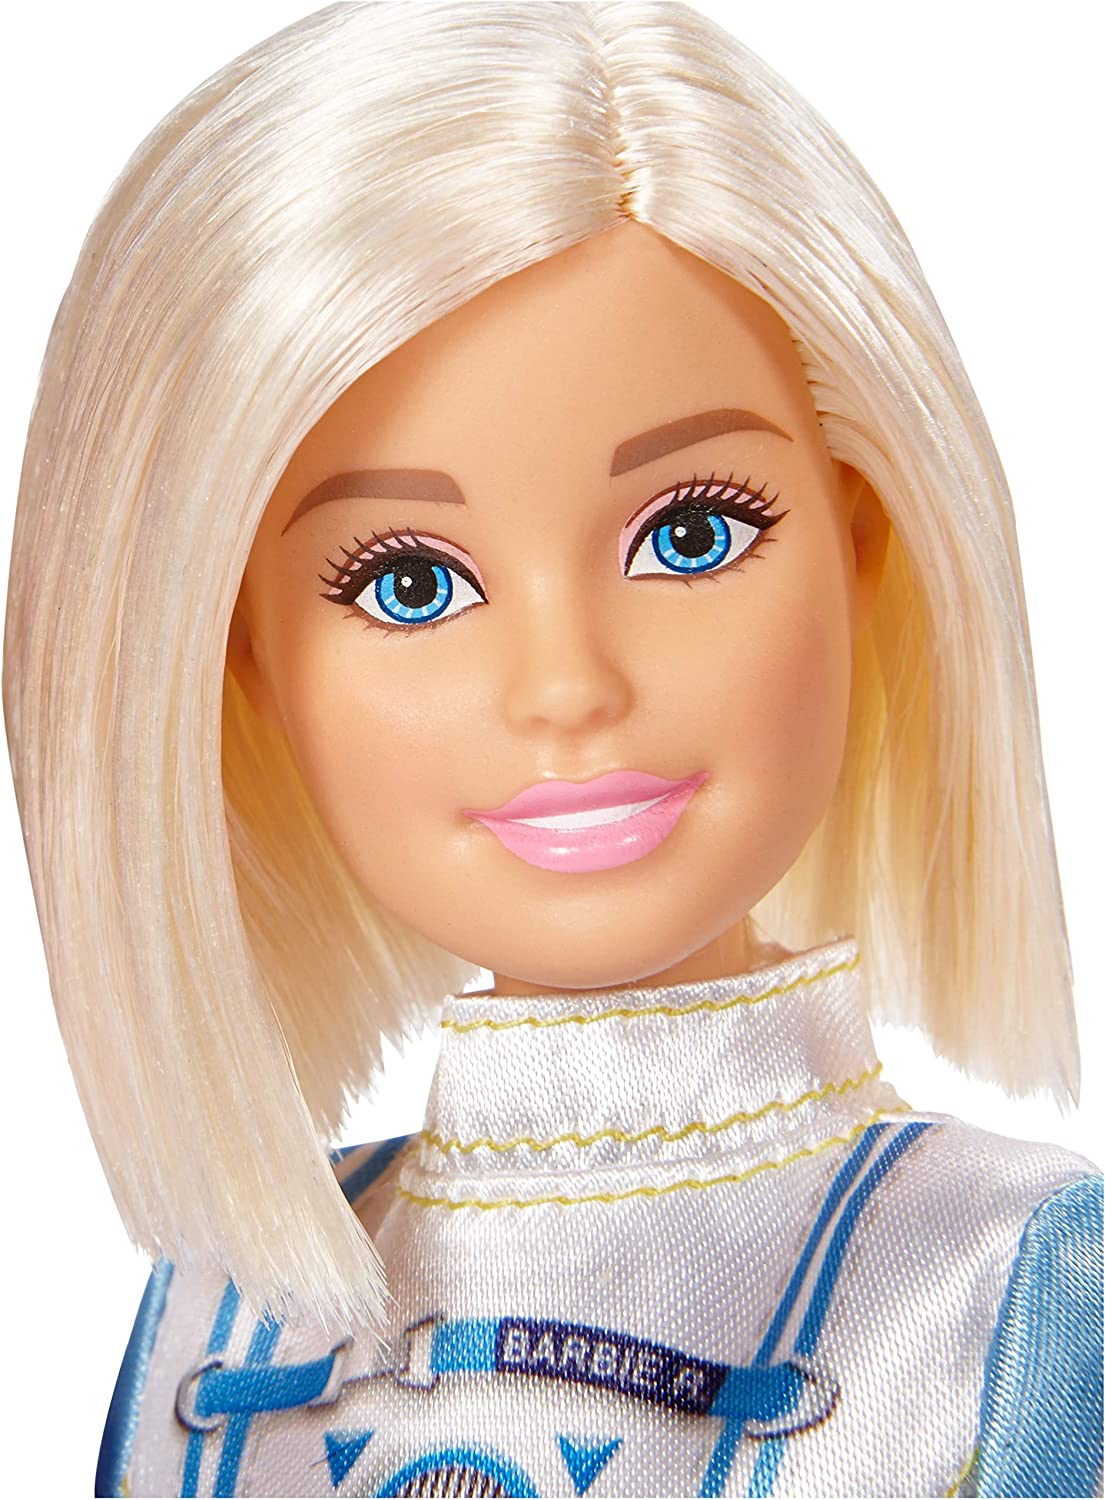 Amazon Com Barbie Astronaut Doll Blonde Wearing Space Suit And Helmet Toys Games